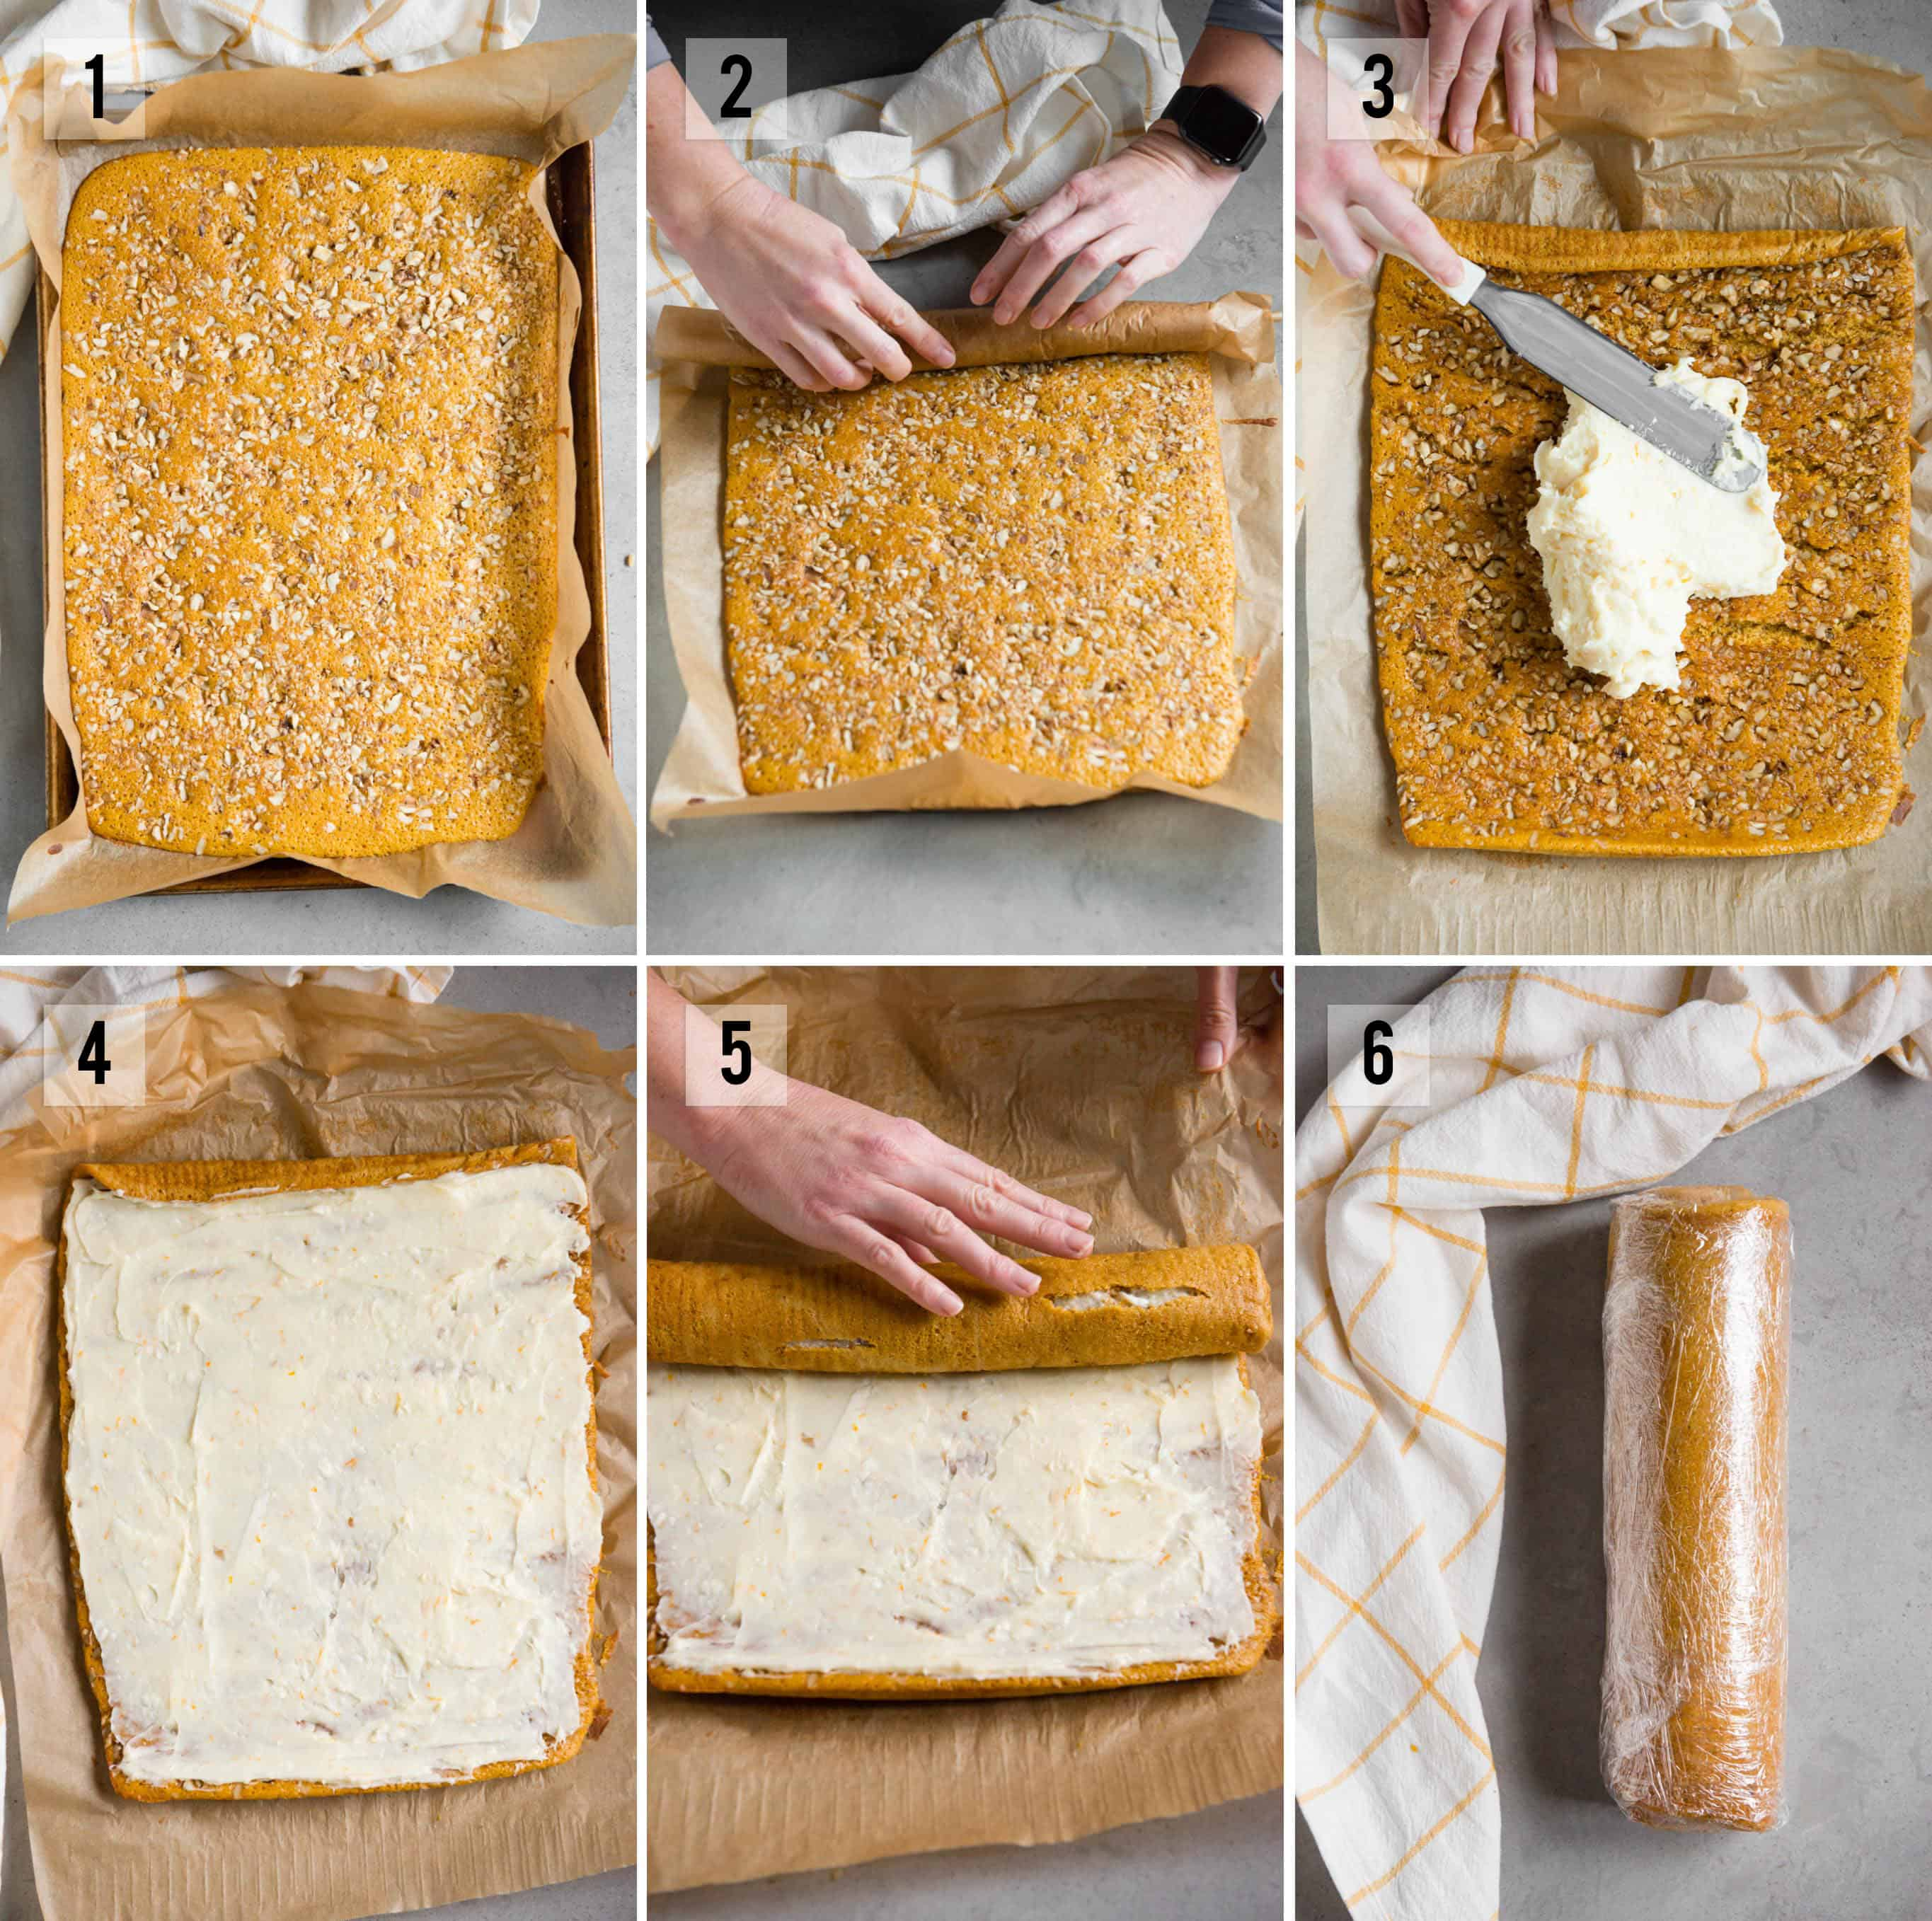 Pumpkin Roll process photos with filling